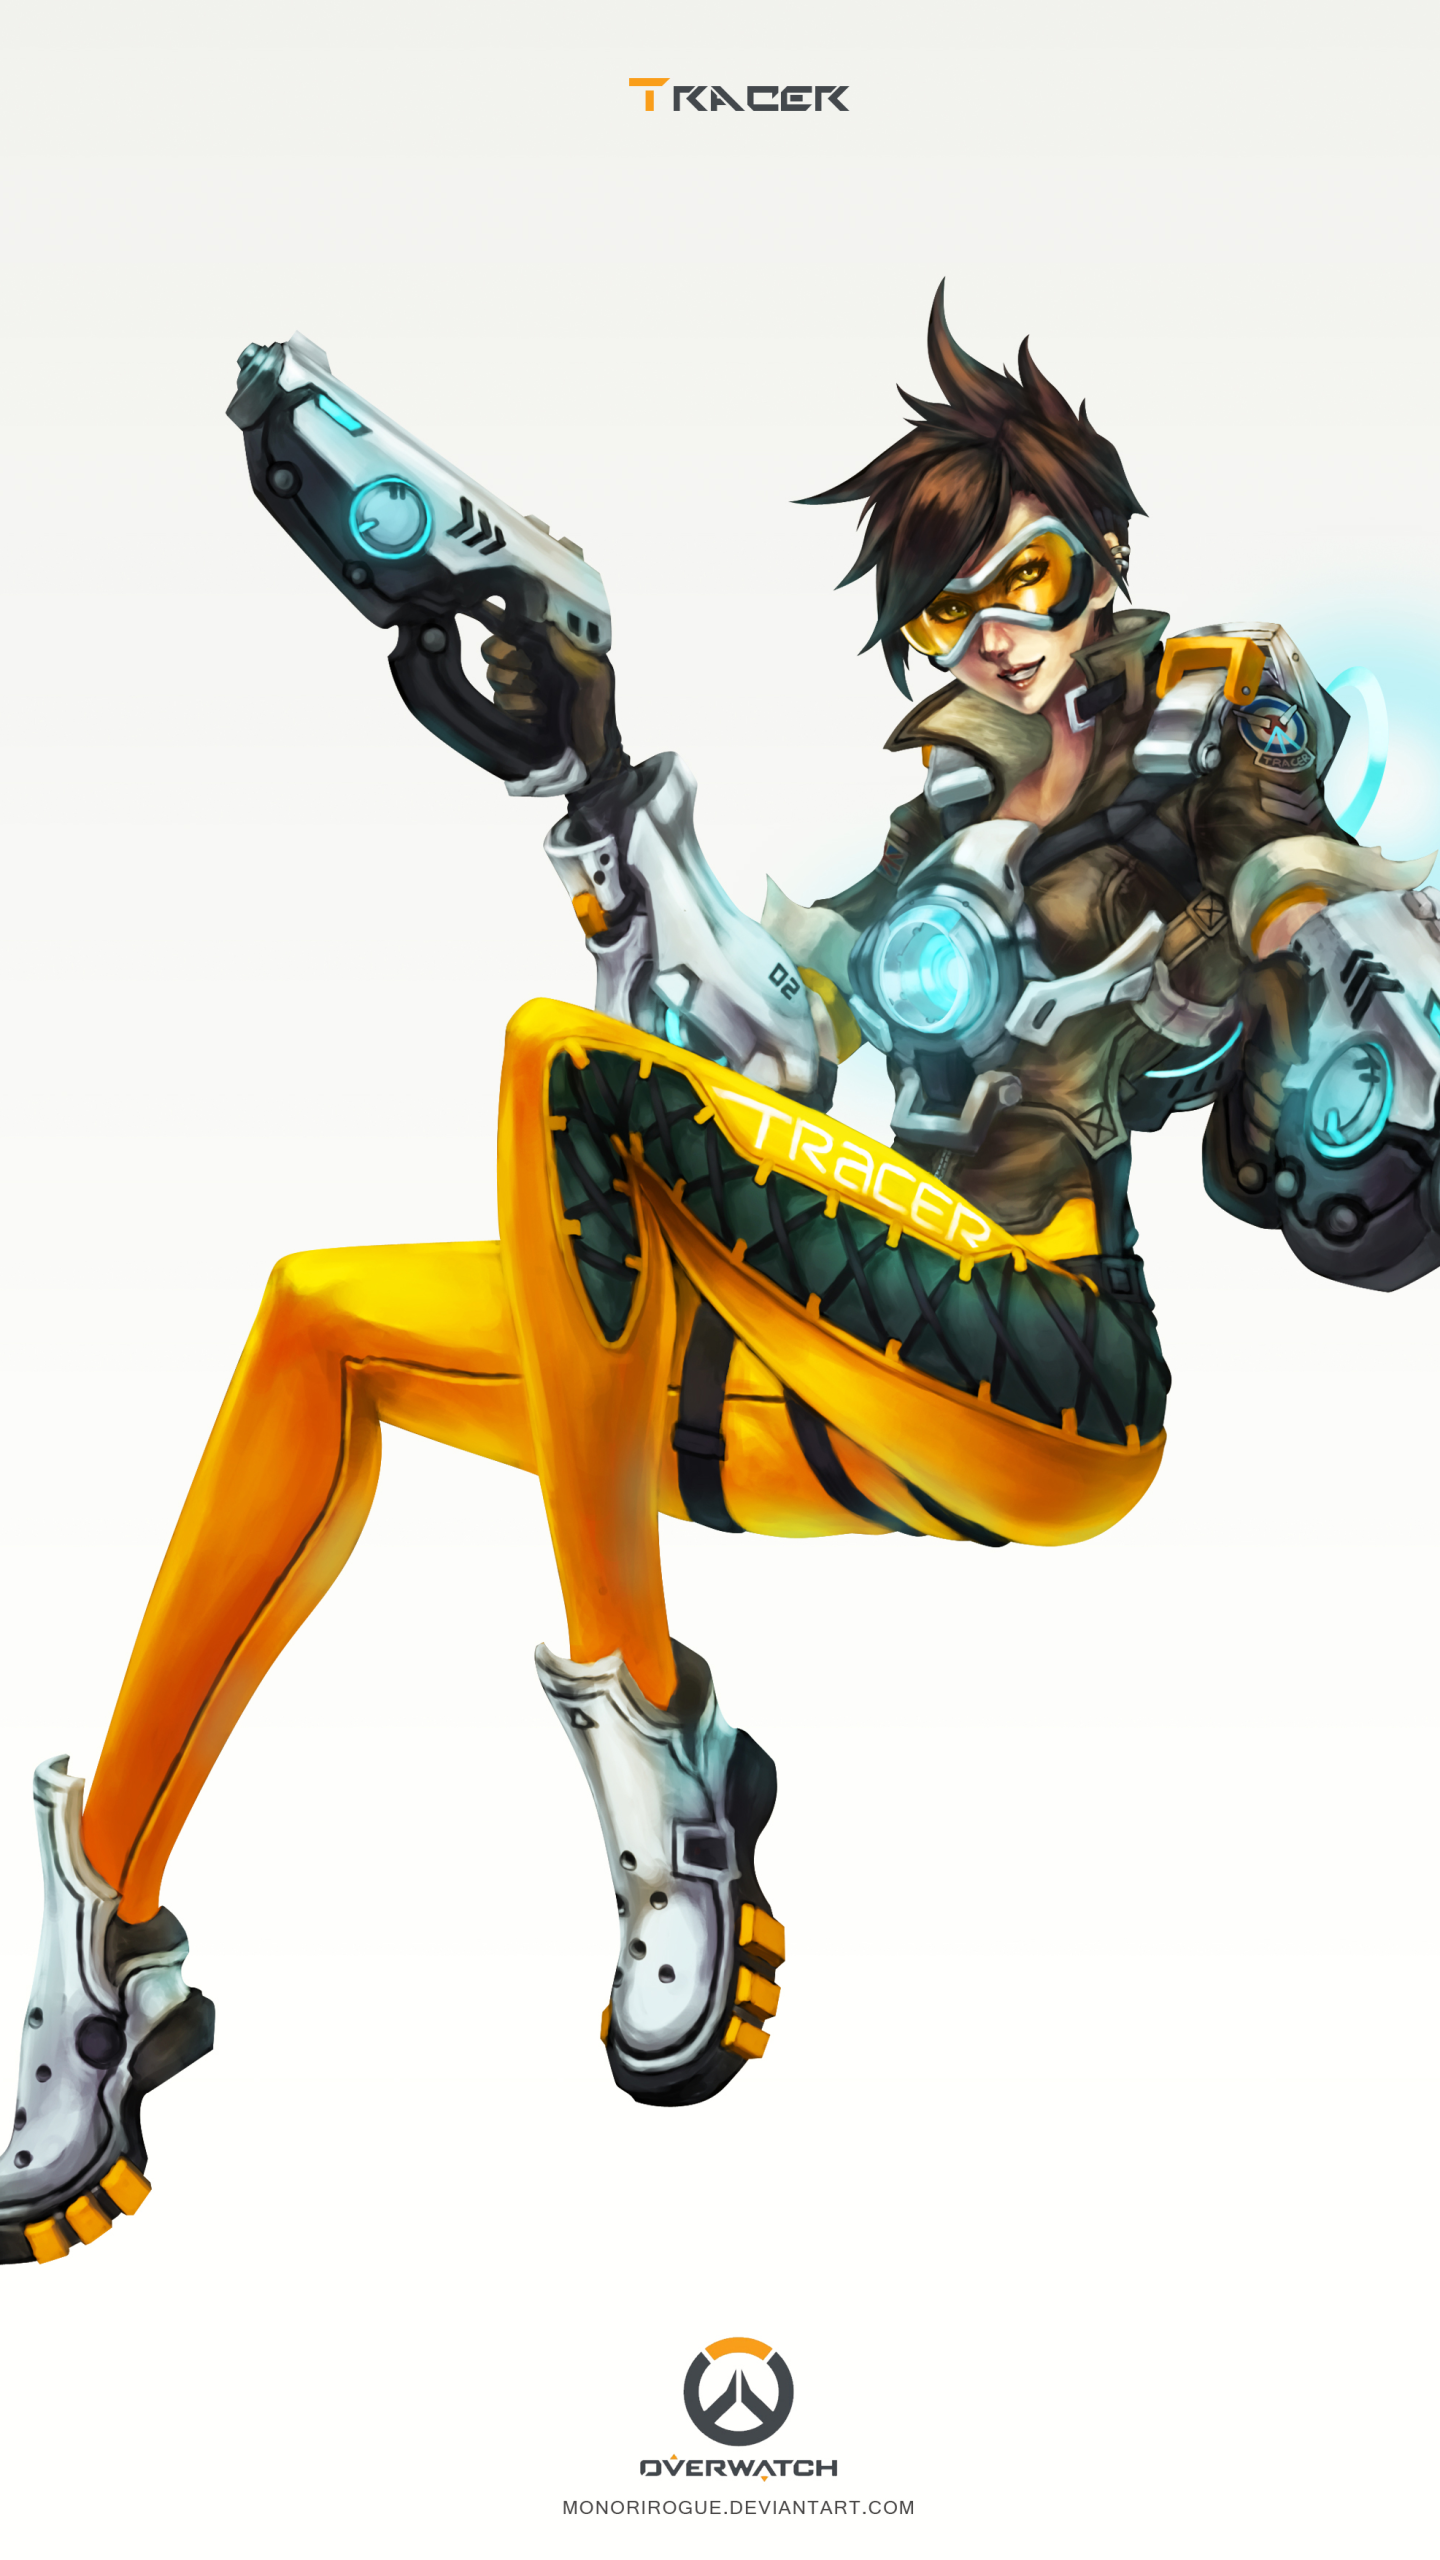 Iphone wallpaper game - 1440x2560 Video Game Overwatch Wallpaper Id 626552